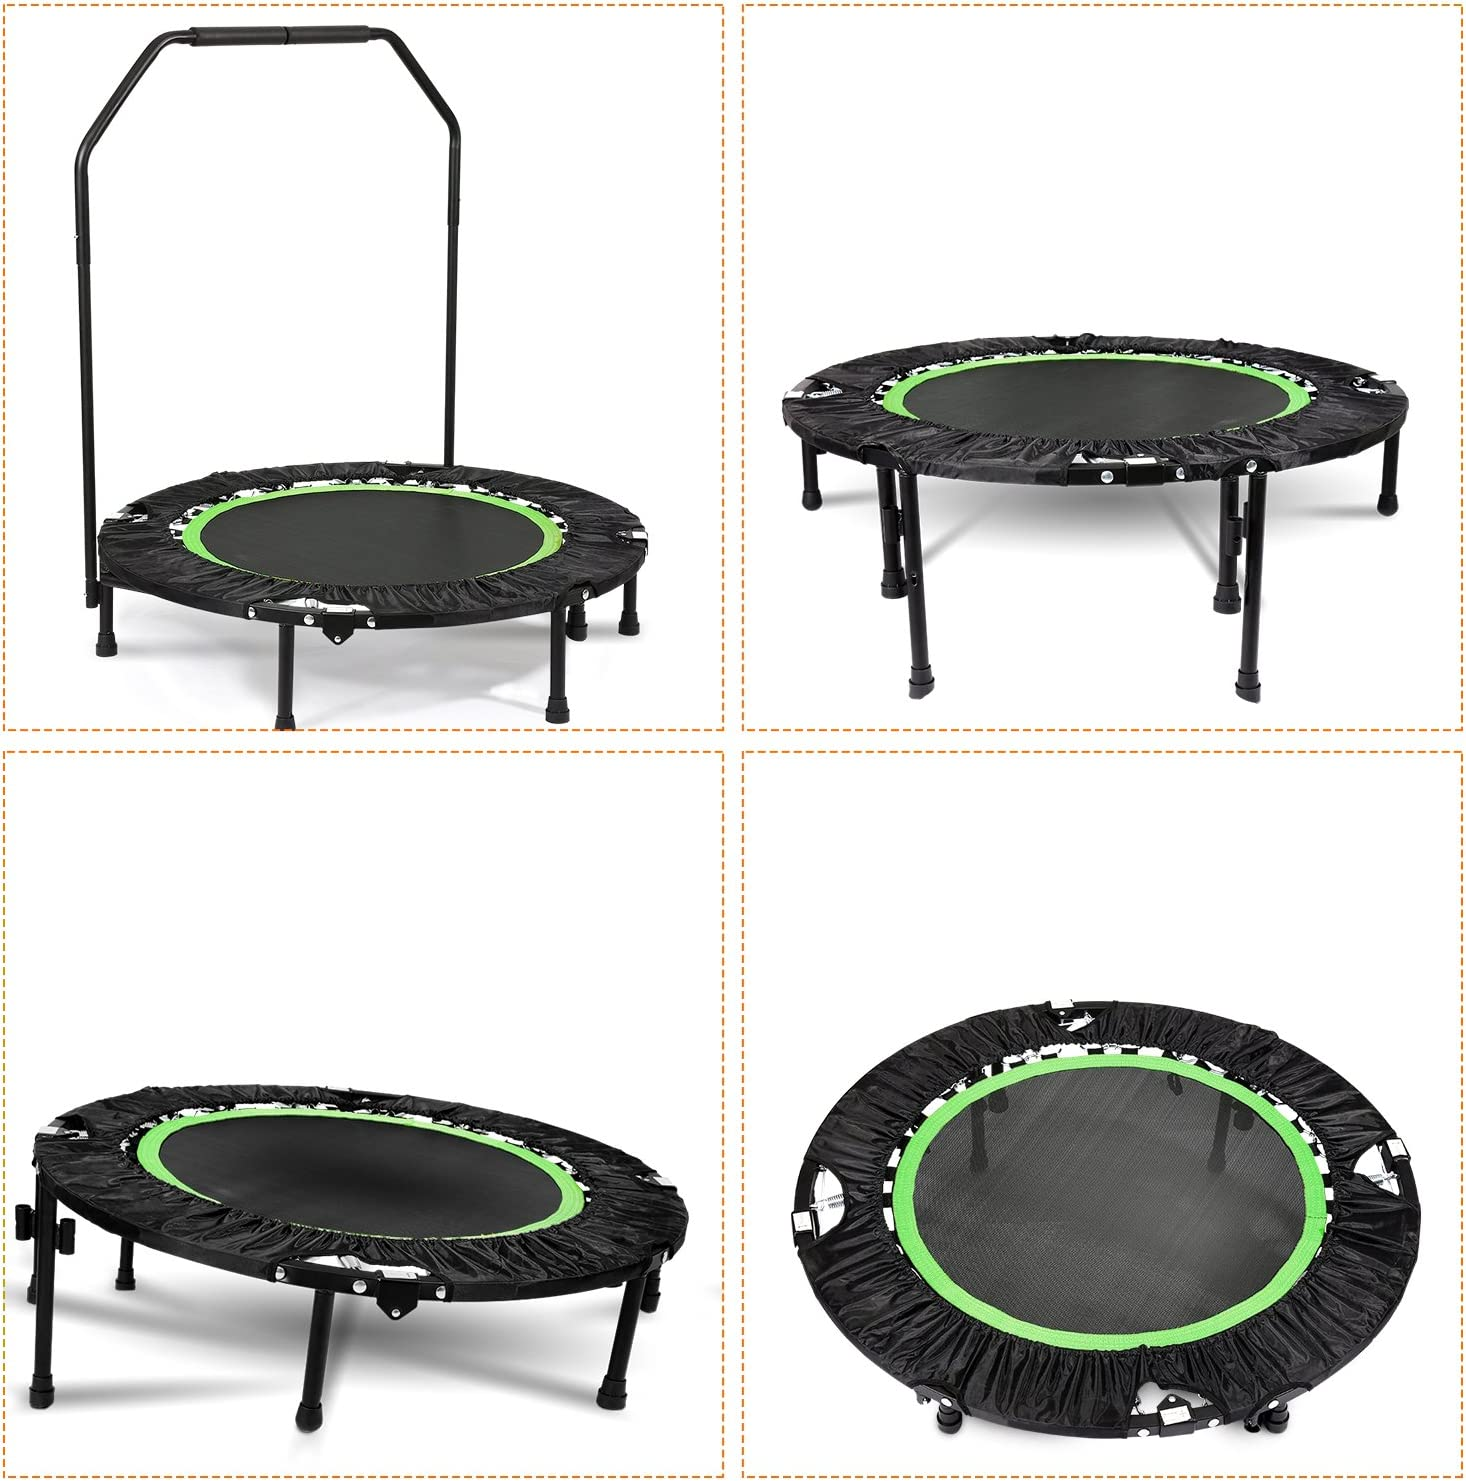 Plohee Portable Foldable Fitness Workout Mini Rebounder Trampoline 40 Inch Max Load 300lbs with Adjustable Handrail for Indoor Garden Workout Cardio Exercise